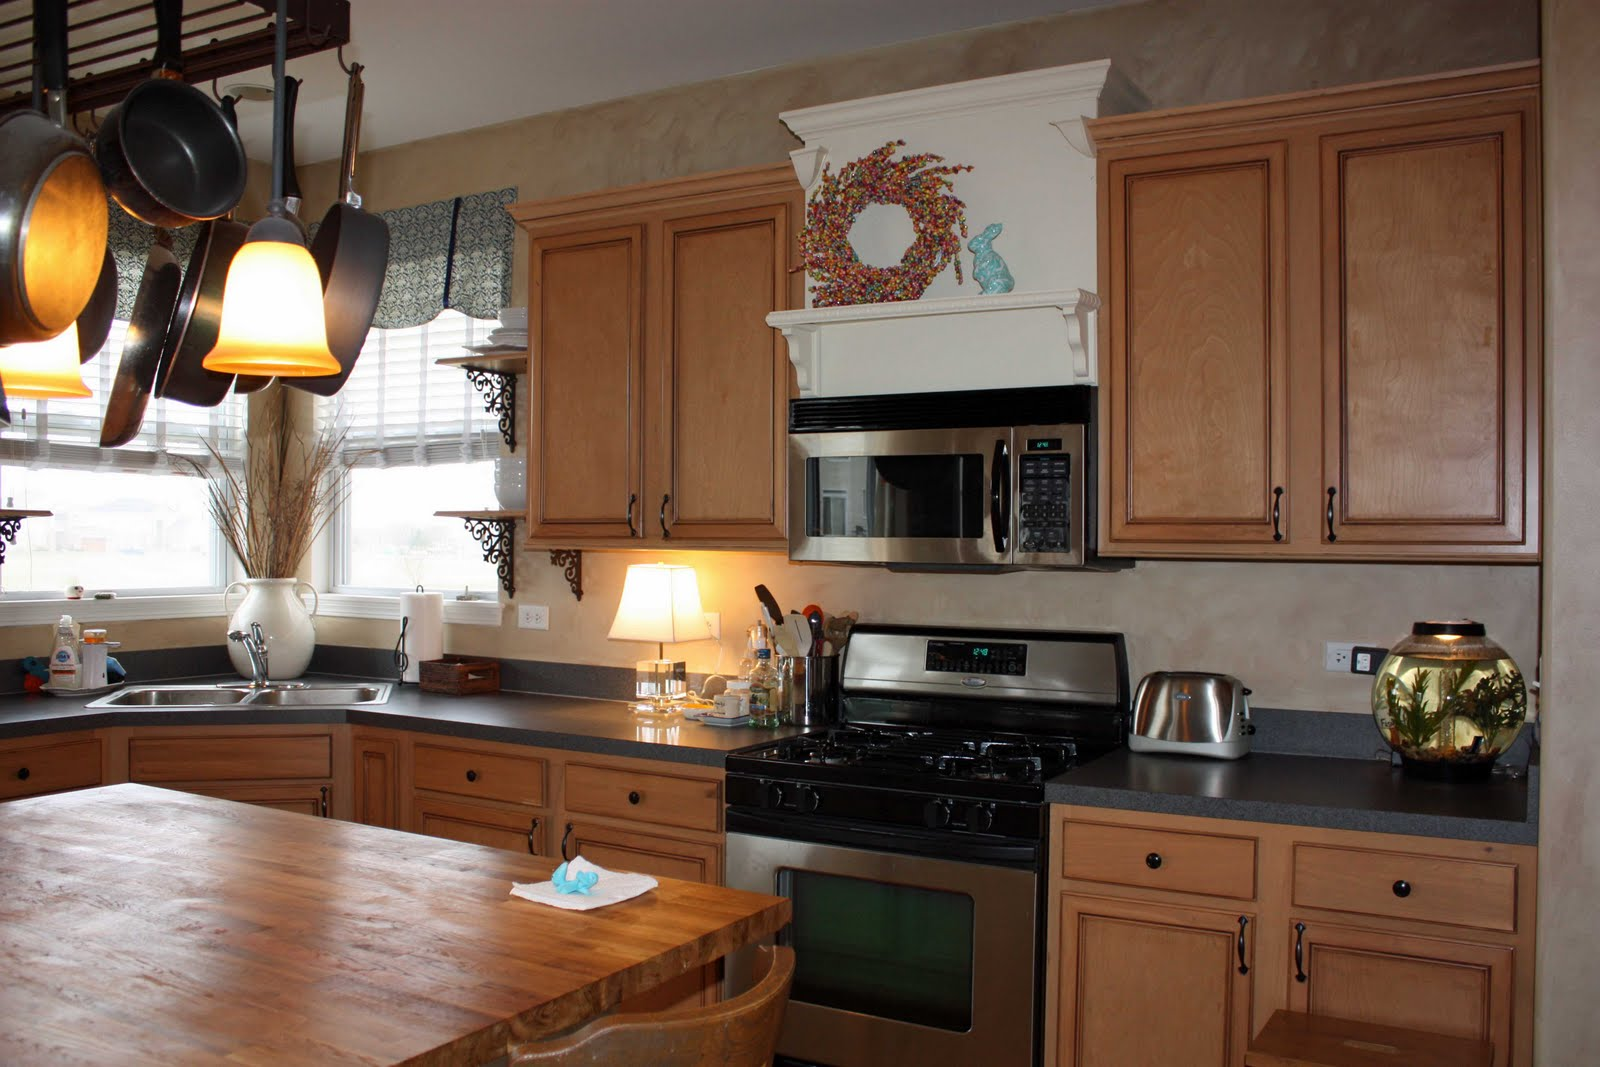 Laminate Kitchen Cabinets With Oak Trim Installing Crown Moulding On Kitchen Cabinets